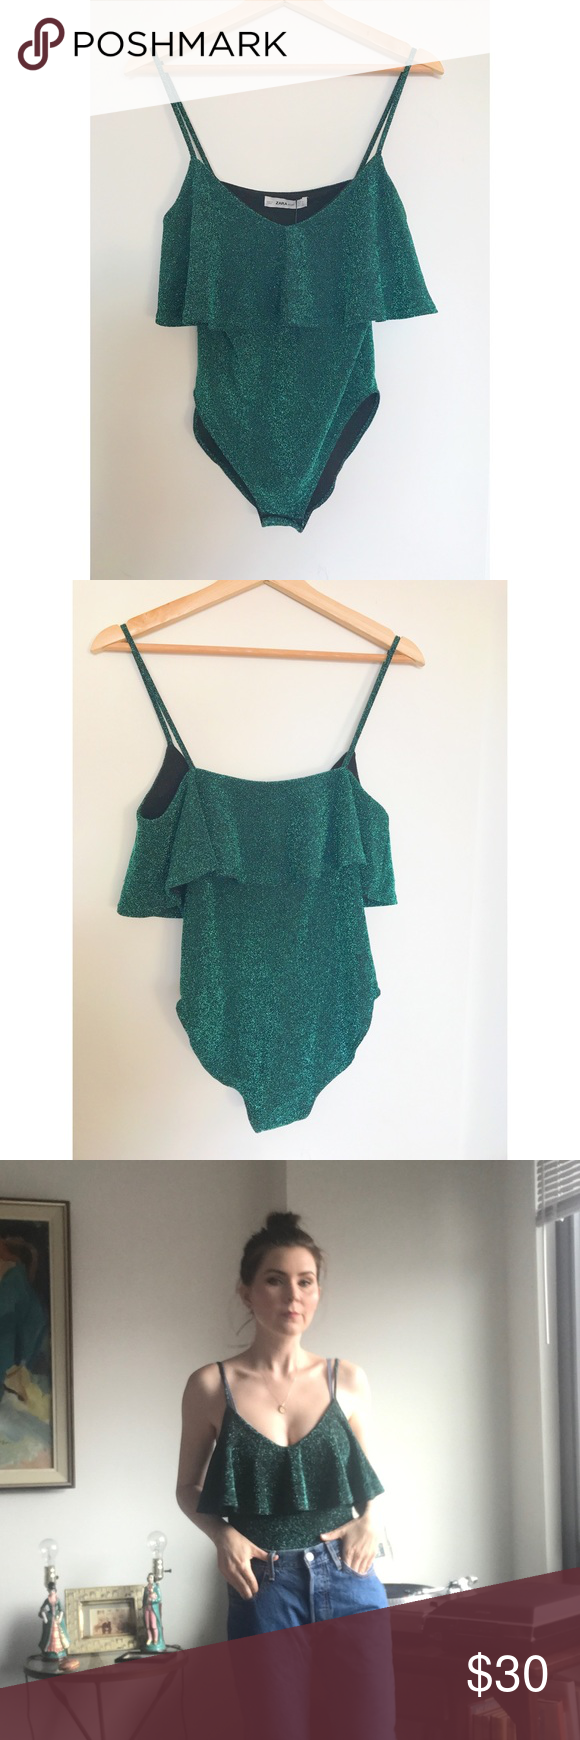 82f669bf9f NWT Teal Zara glitter ruffle bodysuit M Super cute Zara bodysuit with ruffle  and spaghetti straps and snaps underneath. Very comfortable on (reverse  fabric ...